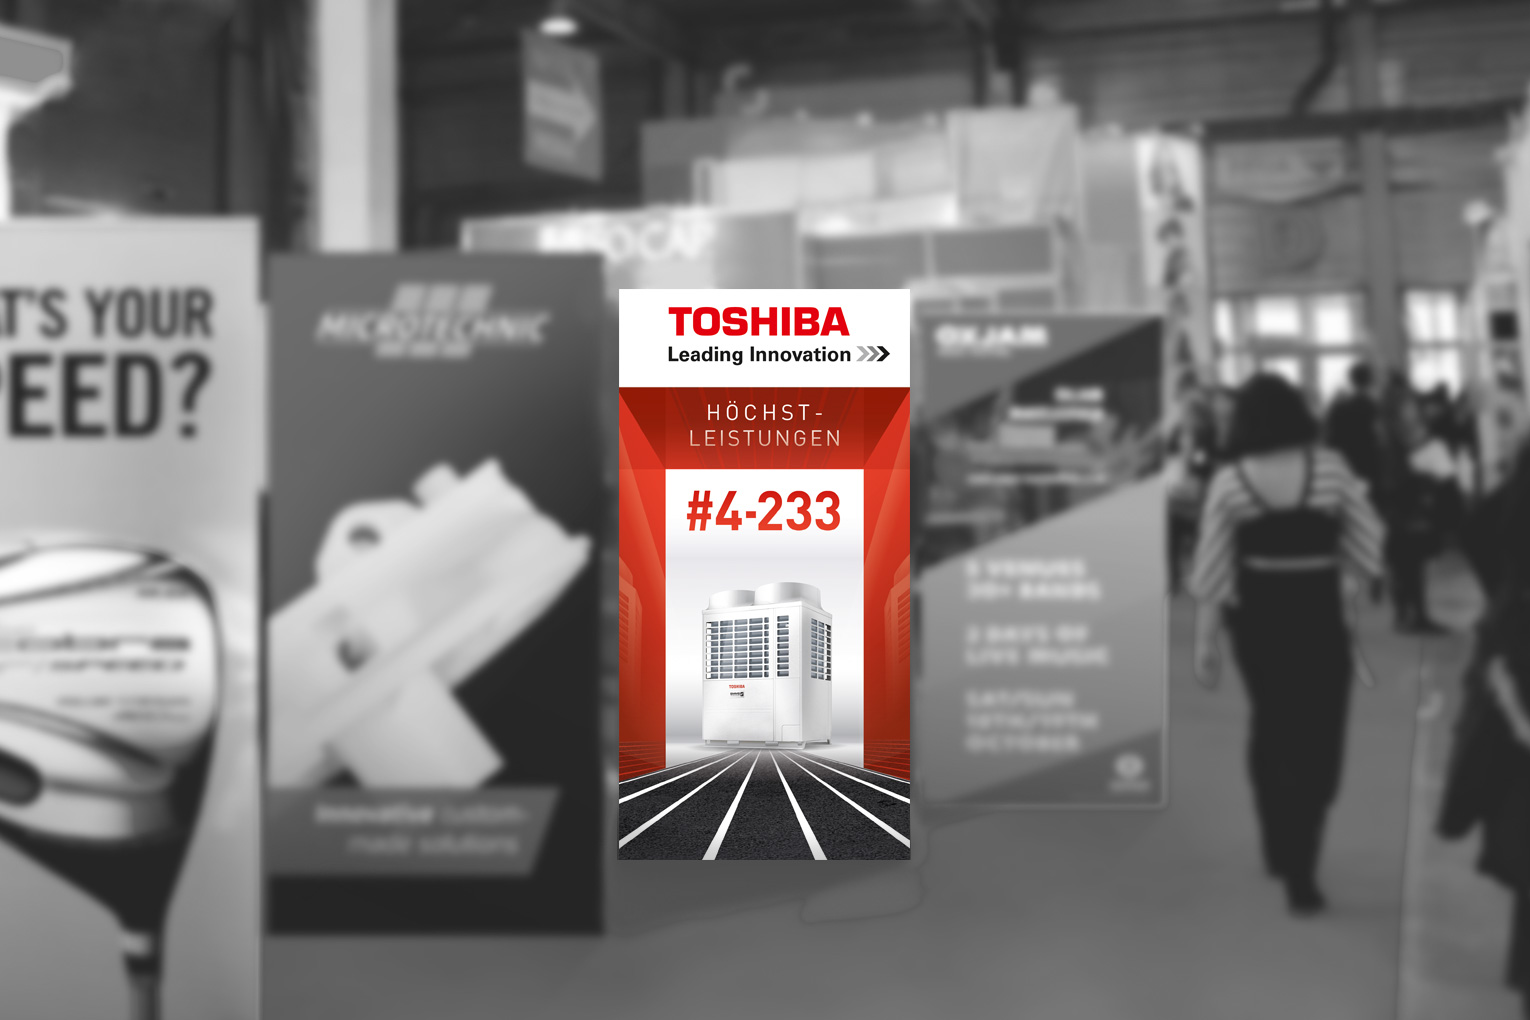 Toshiba Rollup in Messehalle